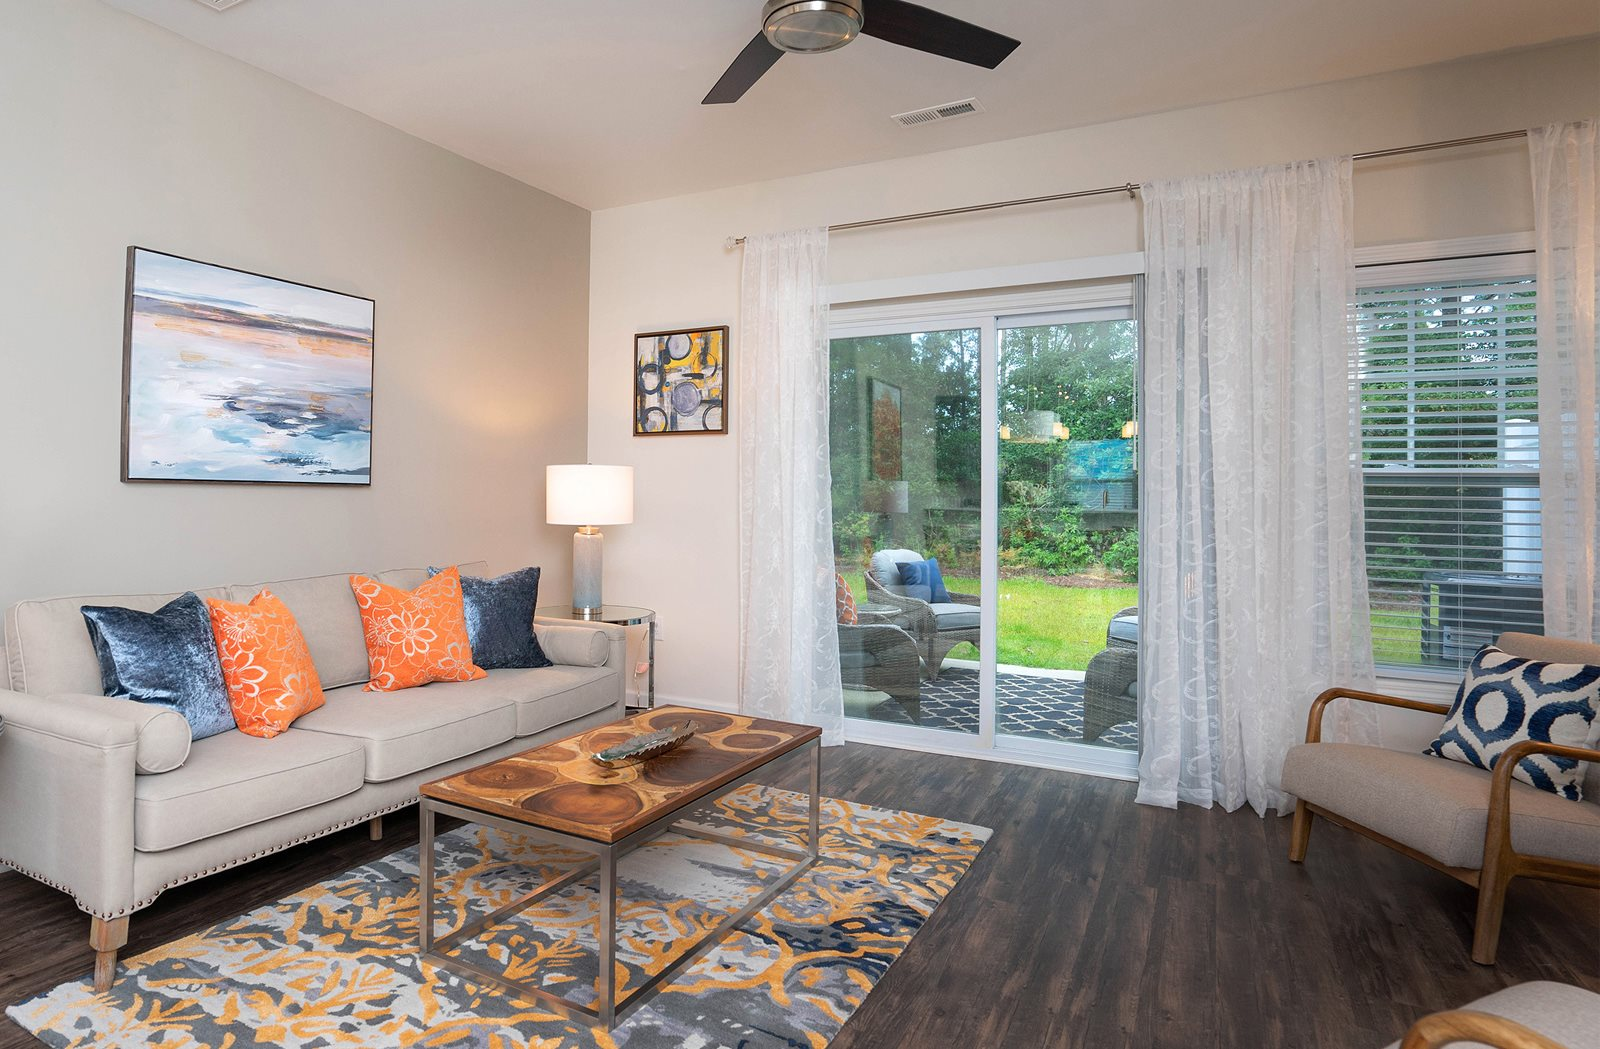 Apartments And Townhomes For Rent In Bluffton Sc At Oldfield Mews